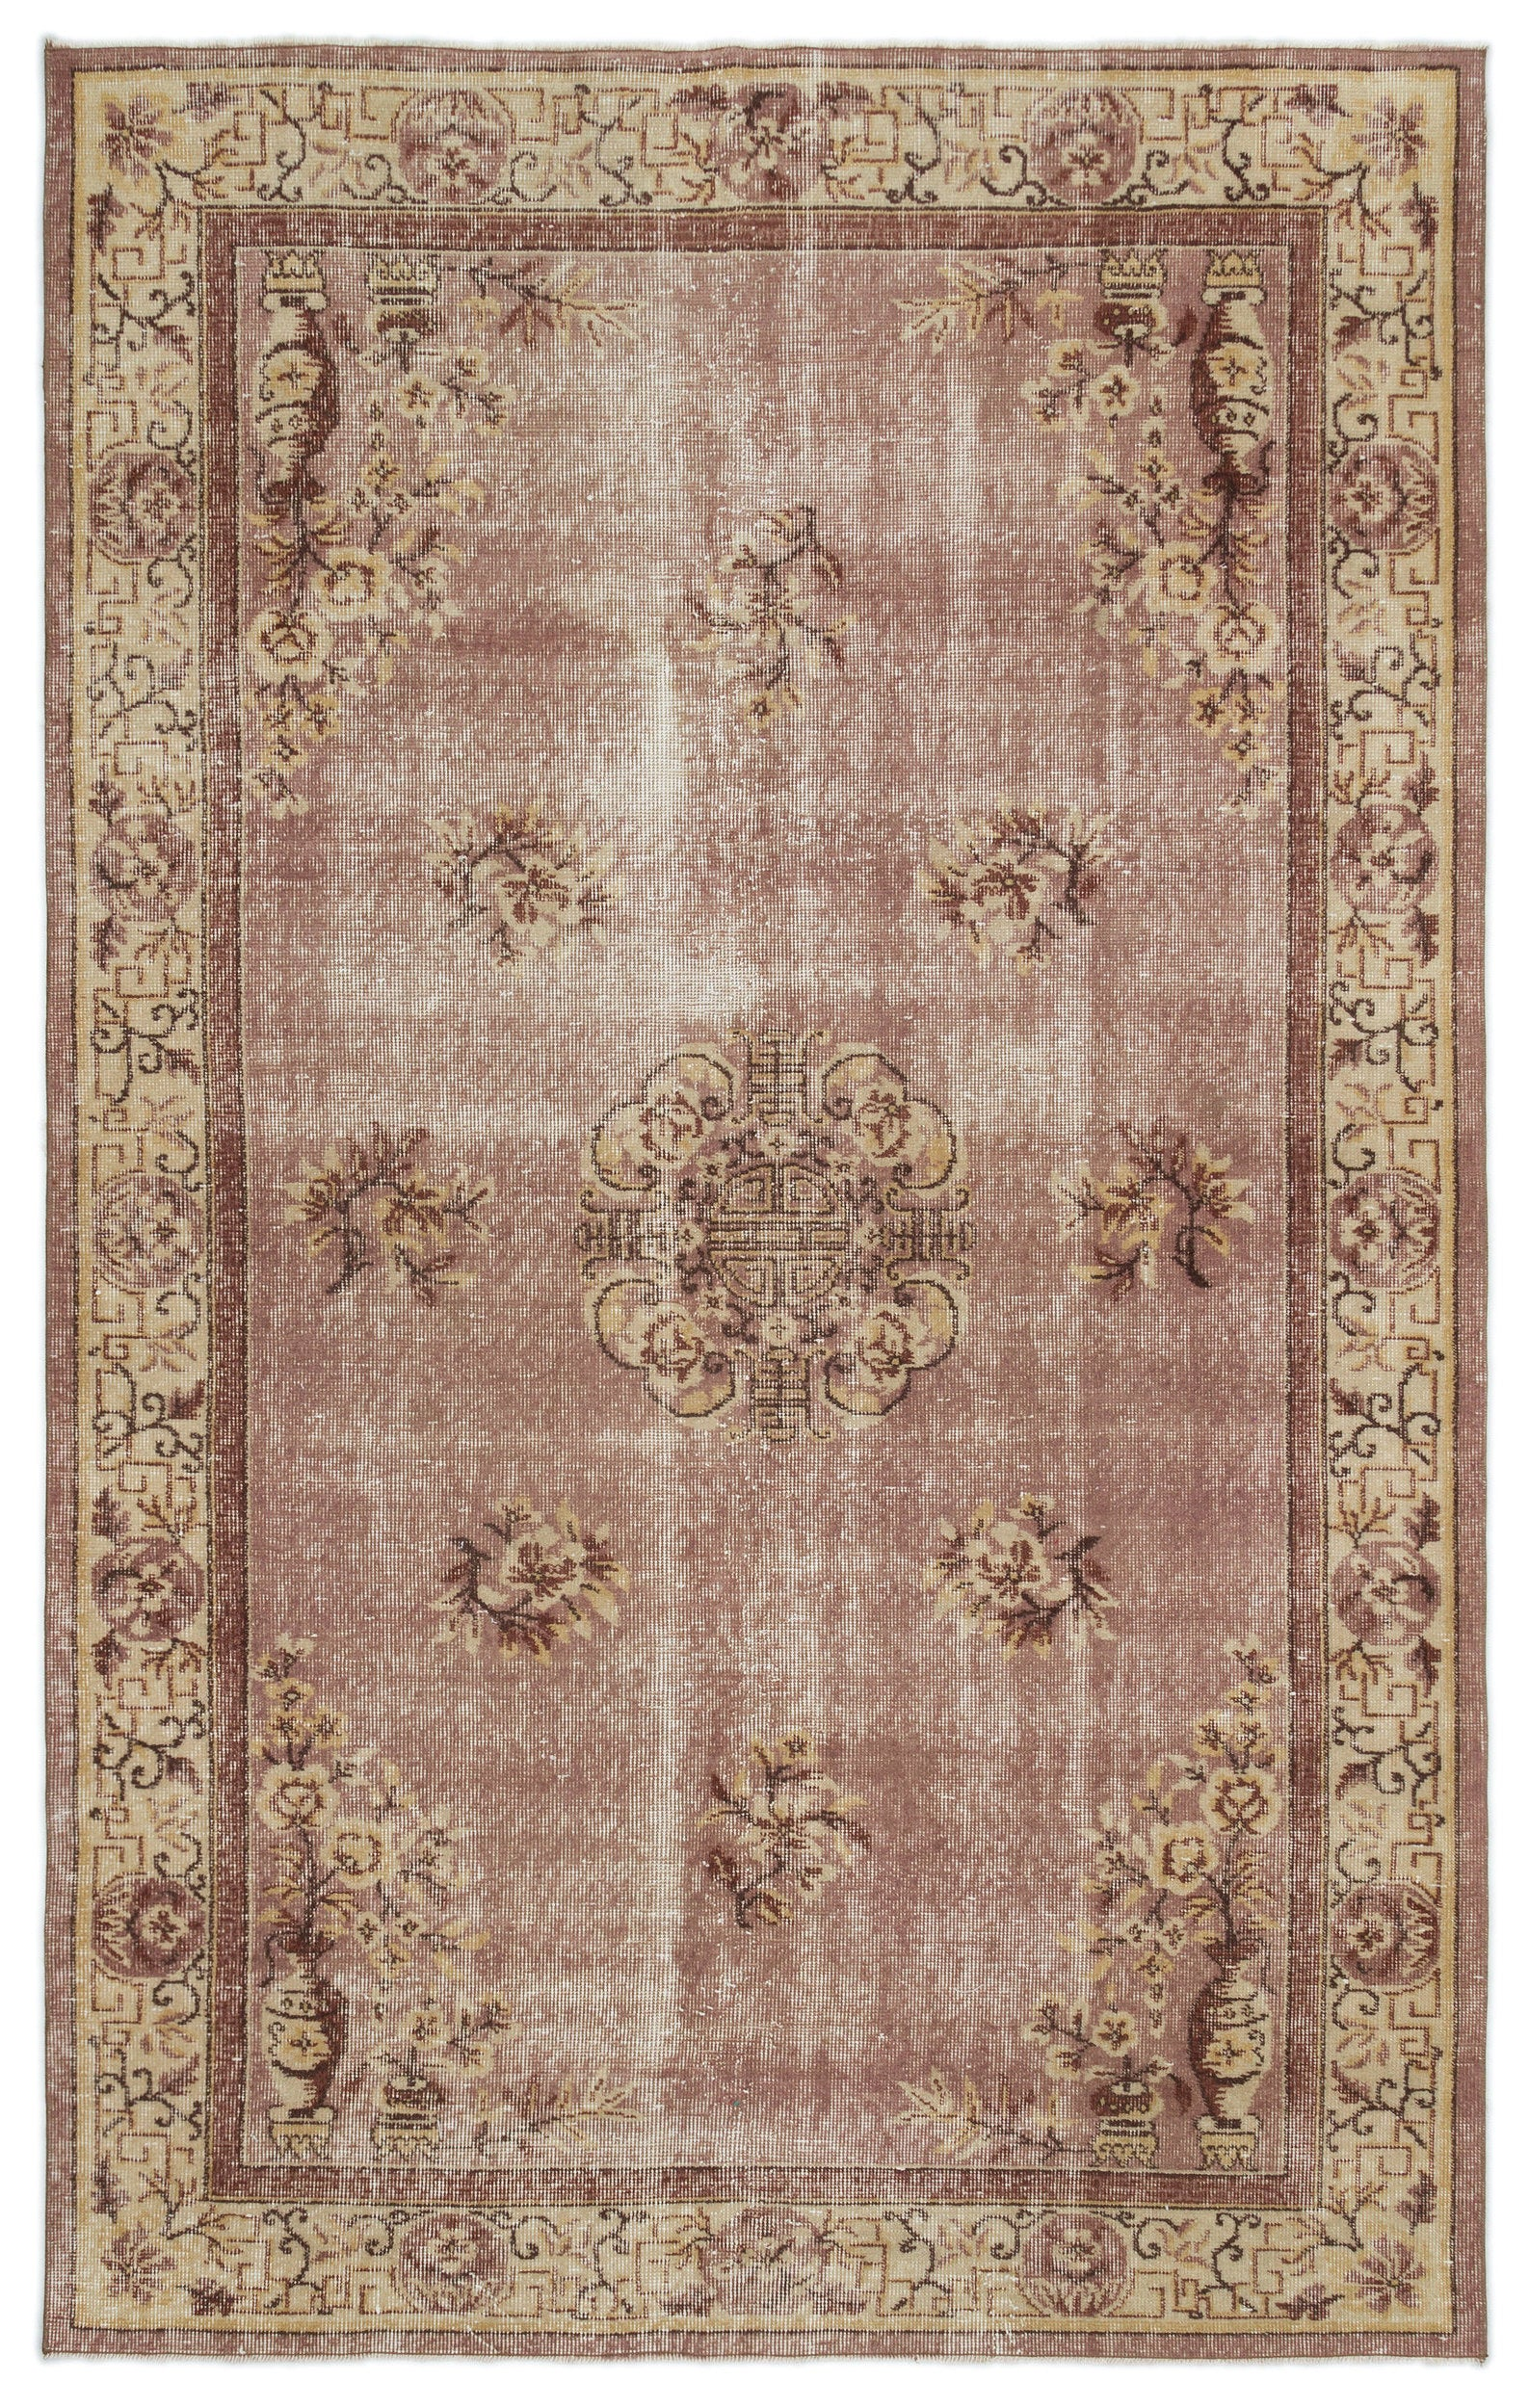 Naturel Over Dyed Vintage Rug 5'9'' x 9'1'' ft 174 x 278 cm